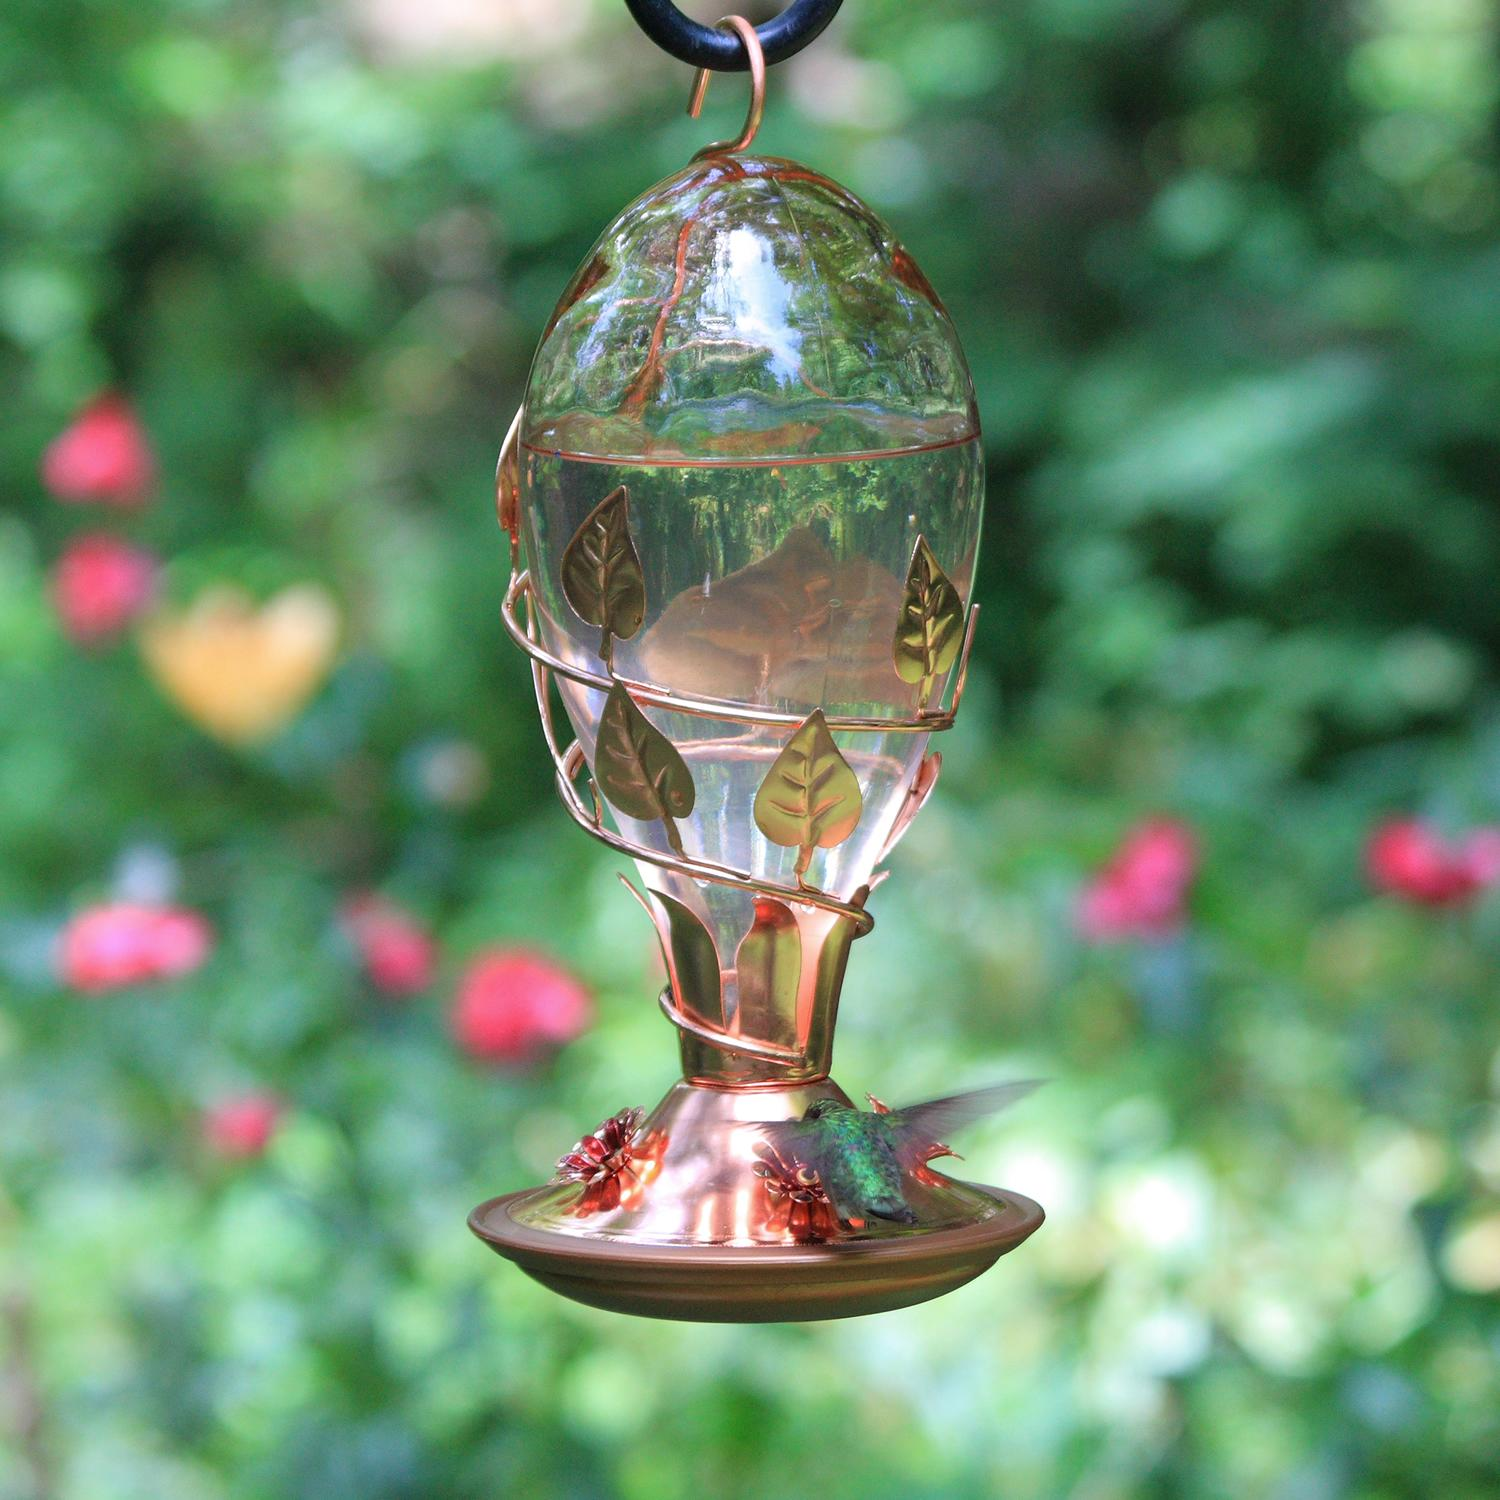 bloom for envy feeders yard glass hummingbird feeder green sale asp